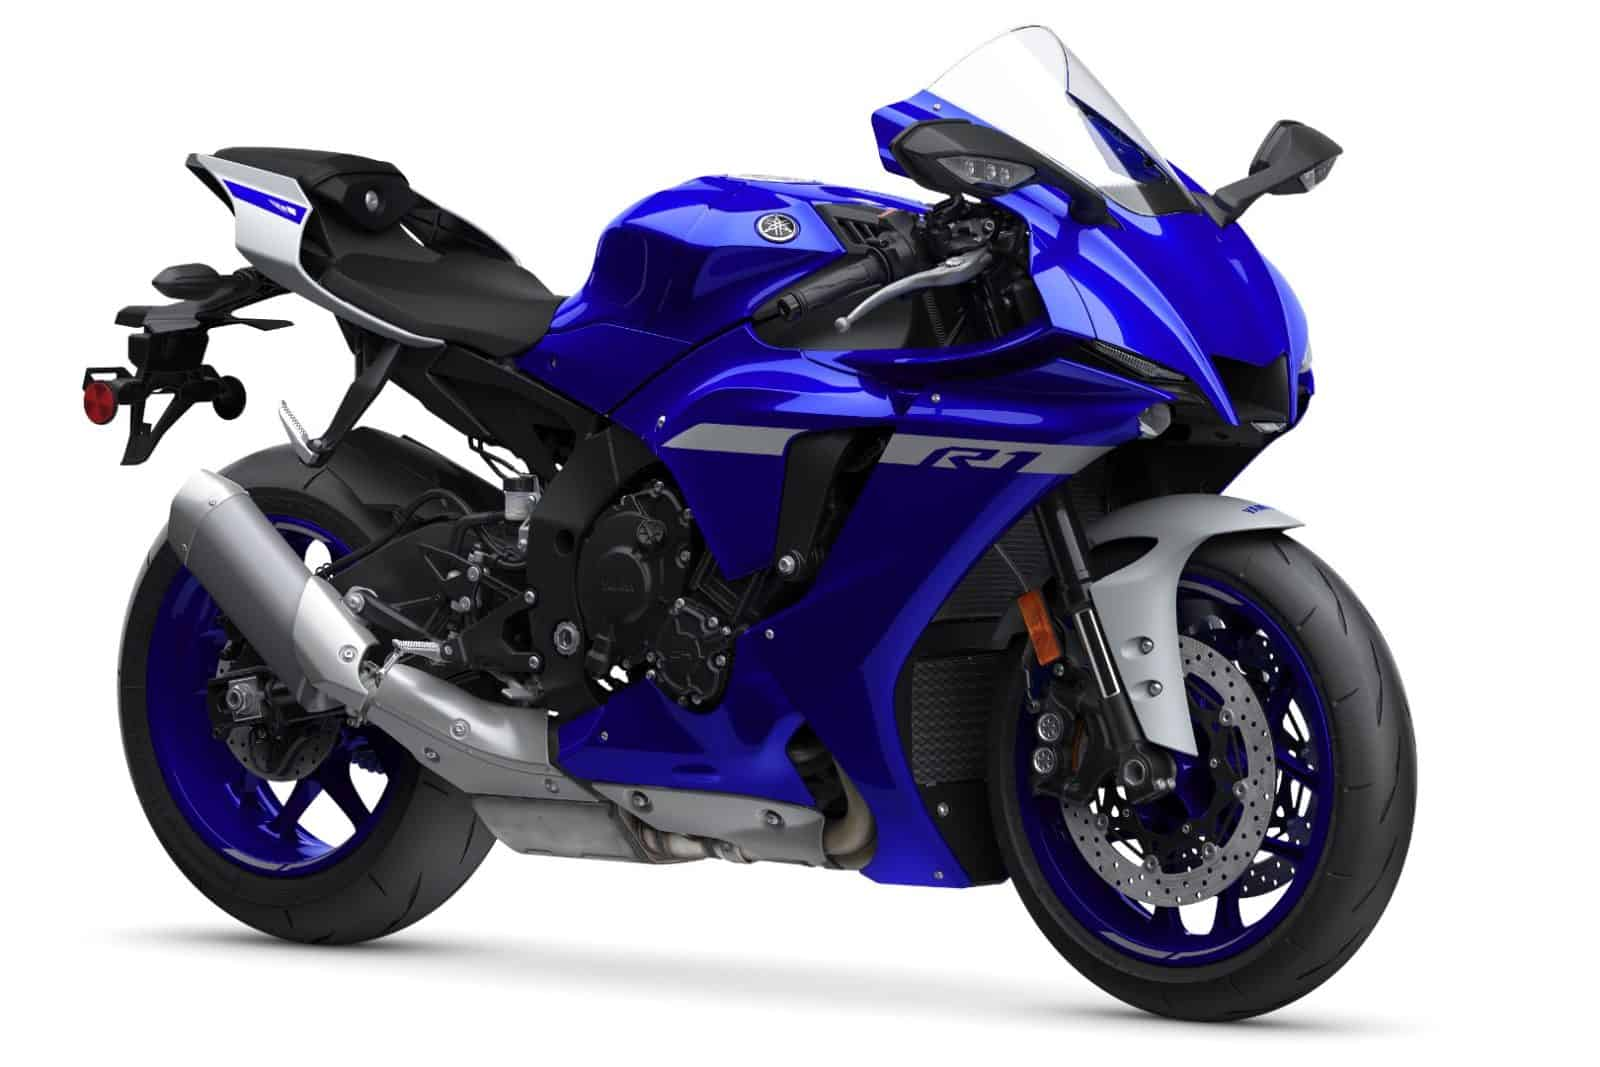 2020 Yamaha Yzf R1 First Look Sport Motorcycle 2